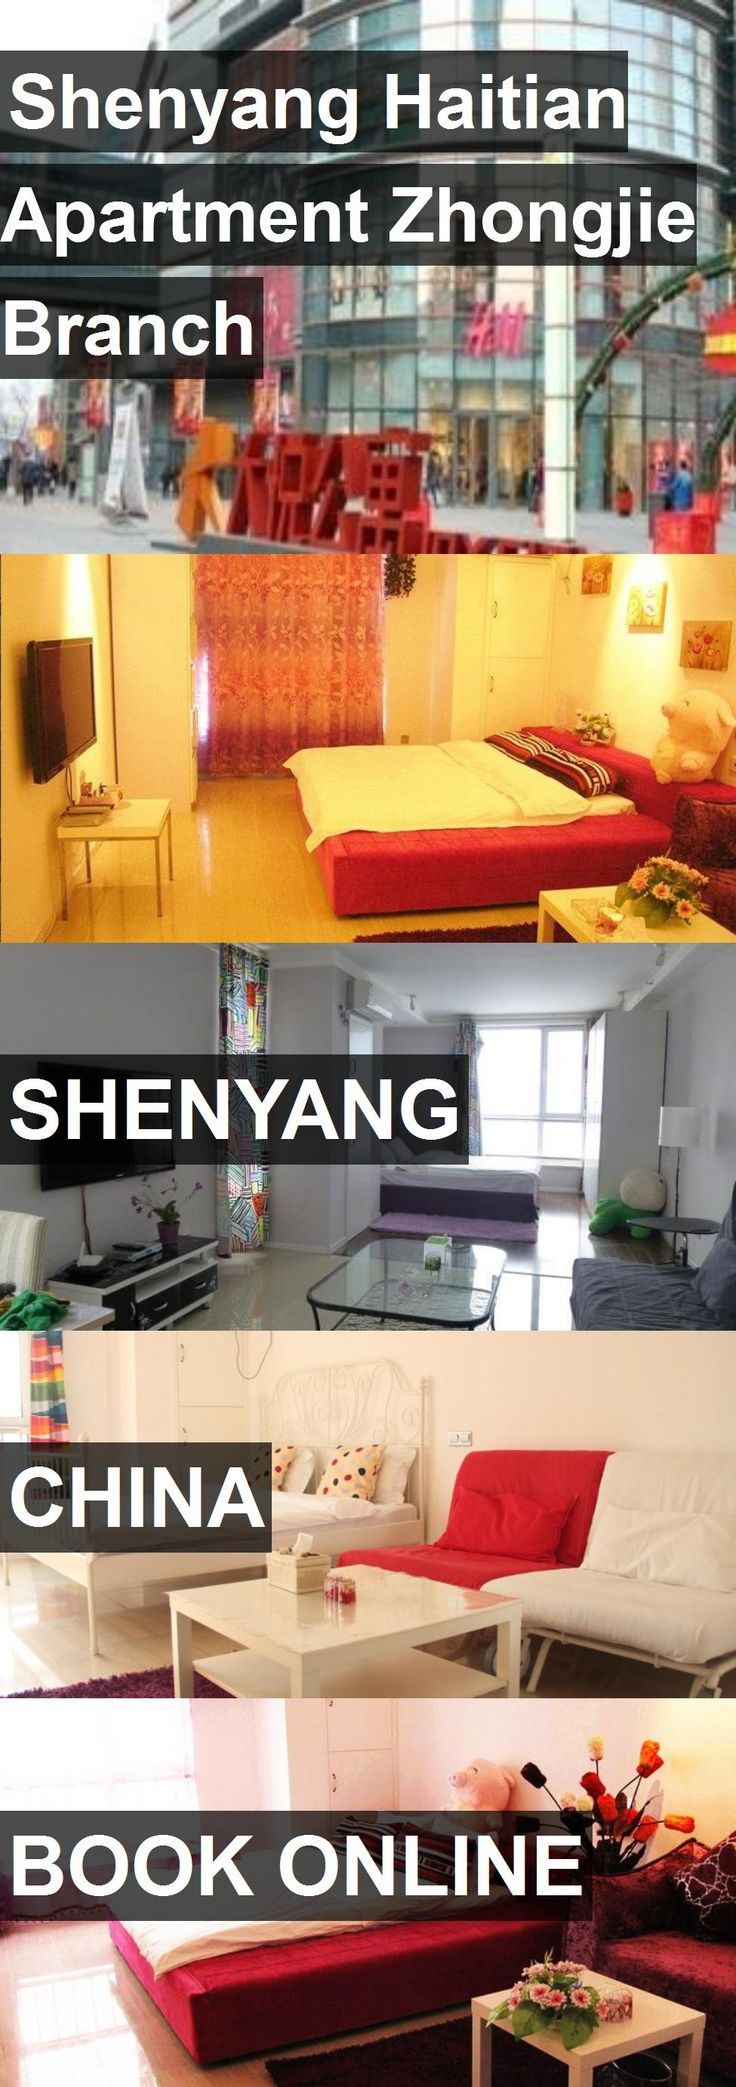 Shenyang Haitian Apartment Zhongjie Branch in Shenyang, China. For more information, photos, reviews and best prices please follow the link. #China #Shenyang #travel #vacation #apartment